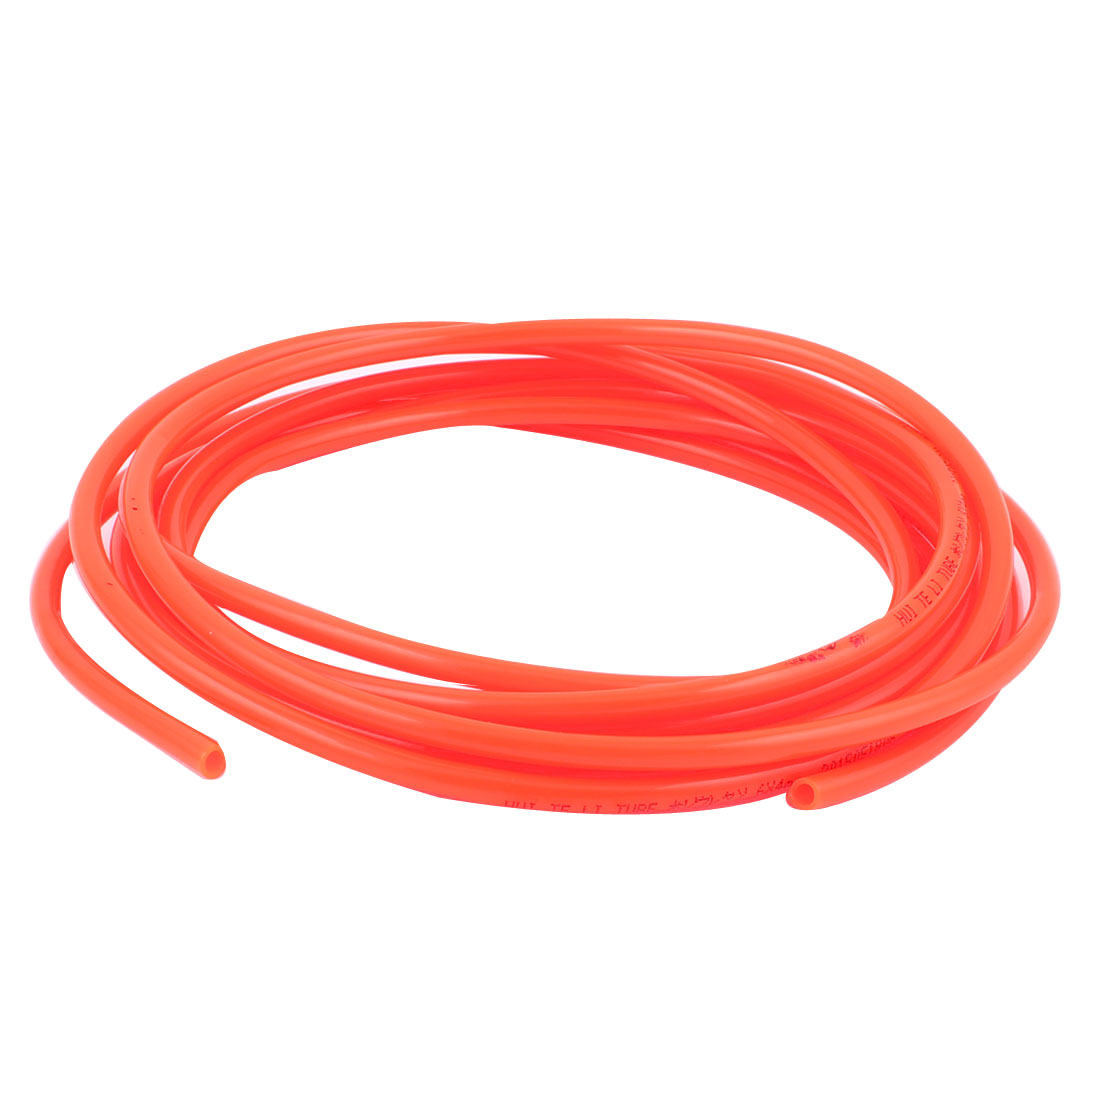 5M 16.4Ft Length 6mmx4mm Dia Pneumatic Polyurethane PU Air Tube Tubing Pipe Hose Red